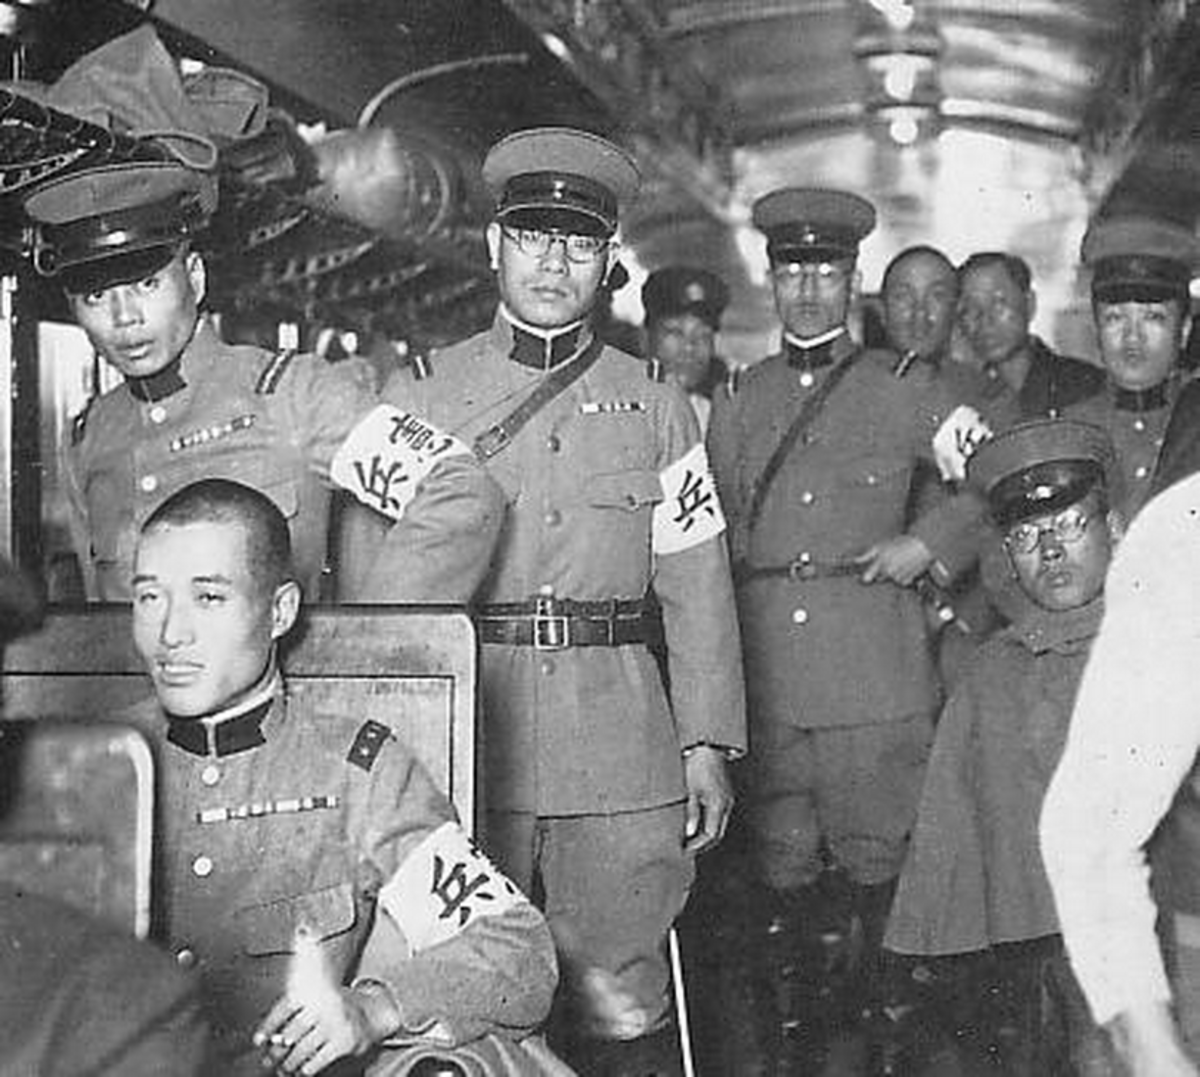 True History and the Lies We Were Told: Japanese Attacked the U.S. Mainland